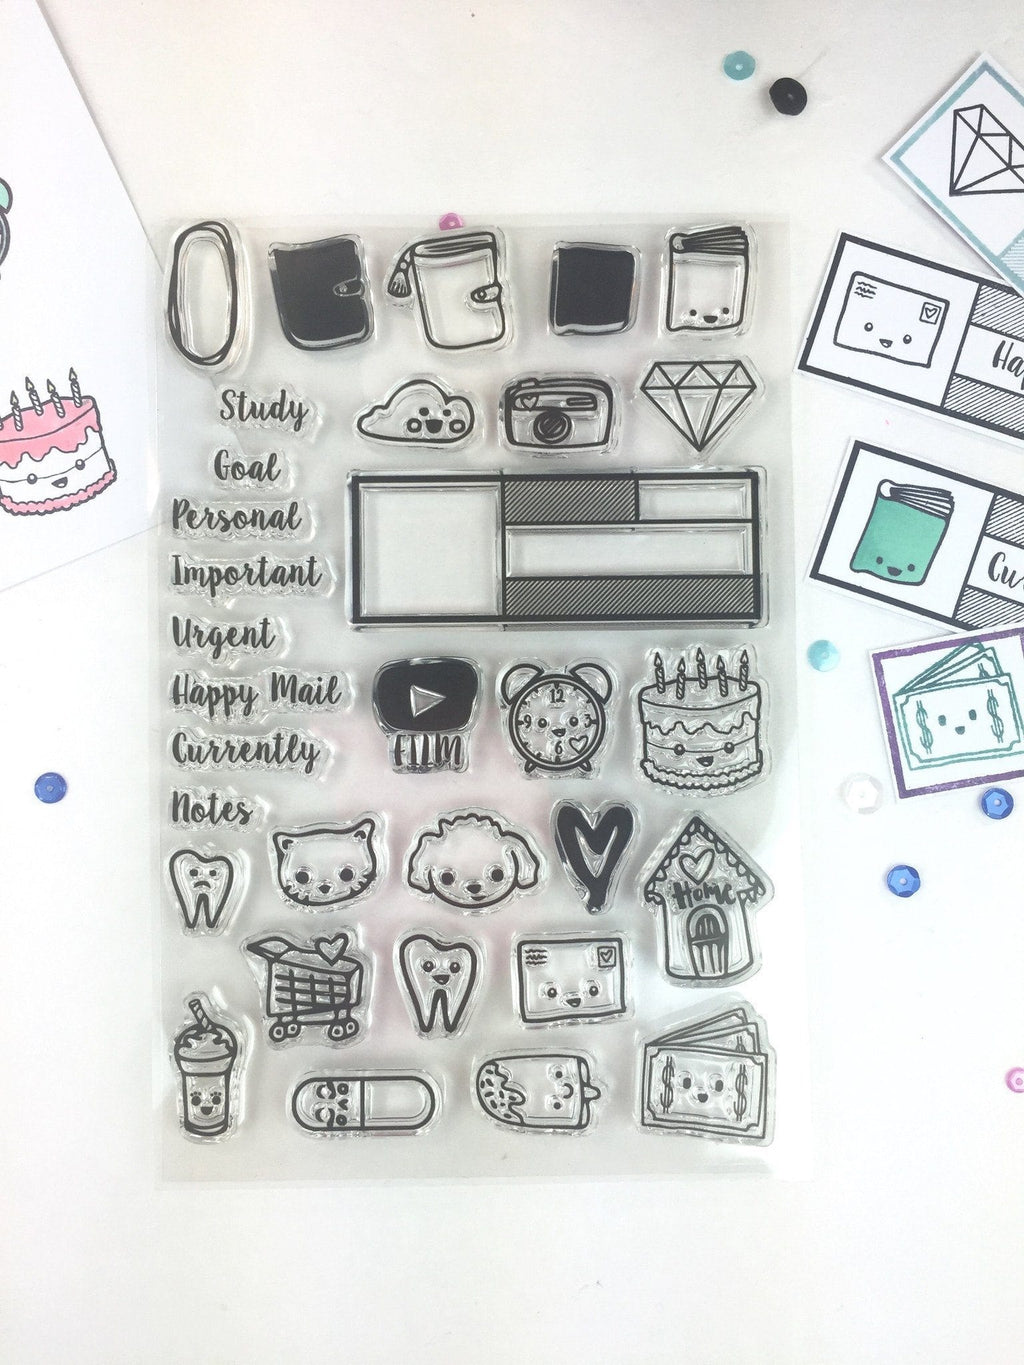 SandraAmelia Stamps Planner Doodles - Clear Stamp Set